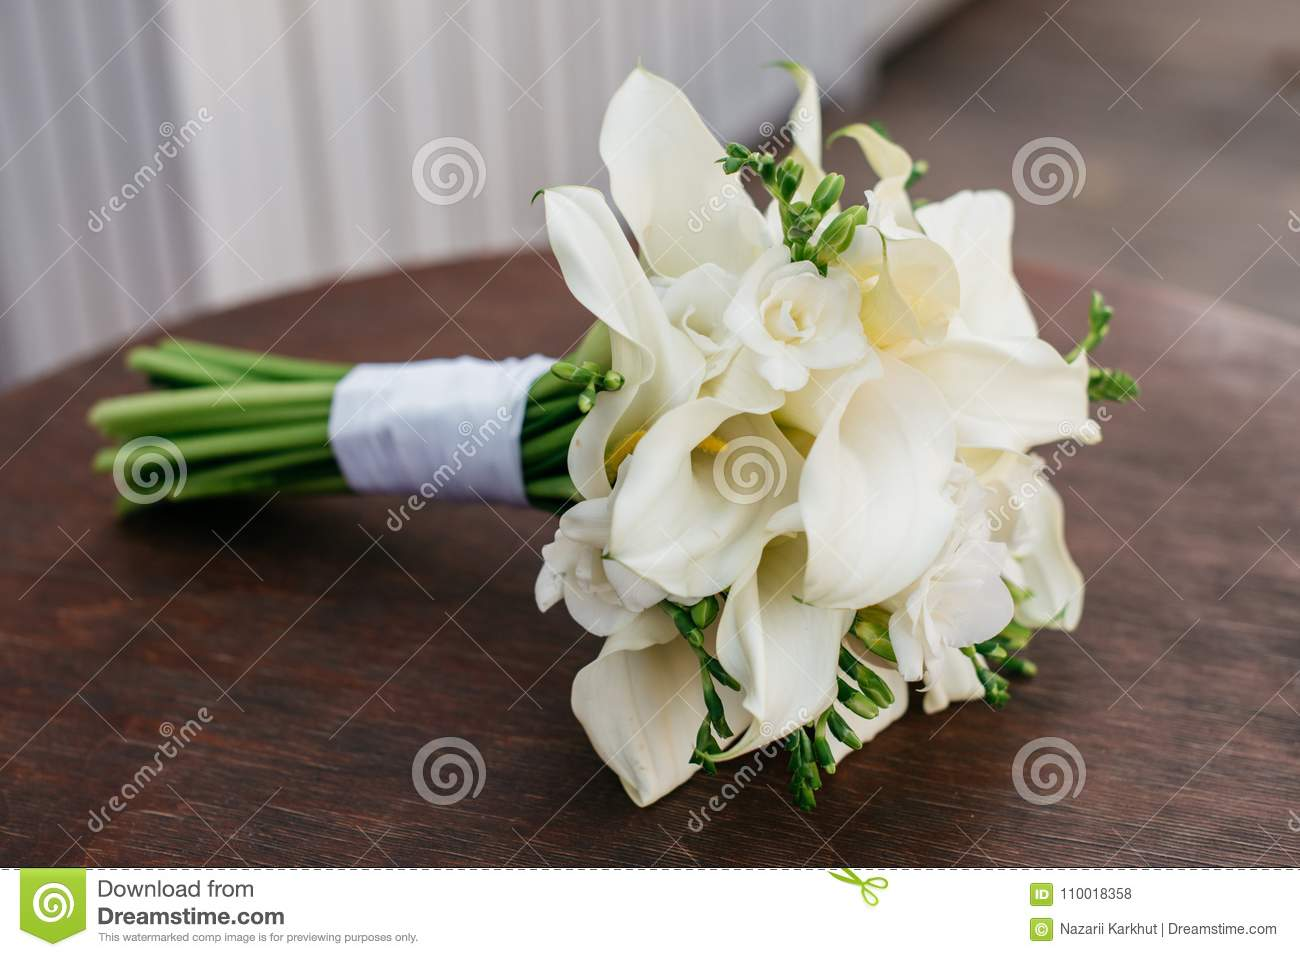 A Wedding Bouquet Of White Flowers Lies On A Round Table Stock Photo